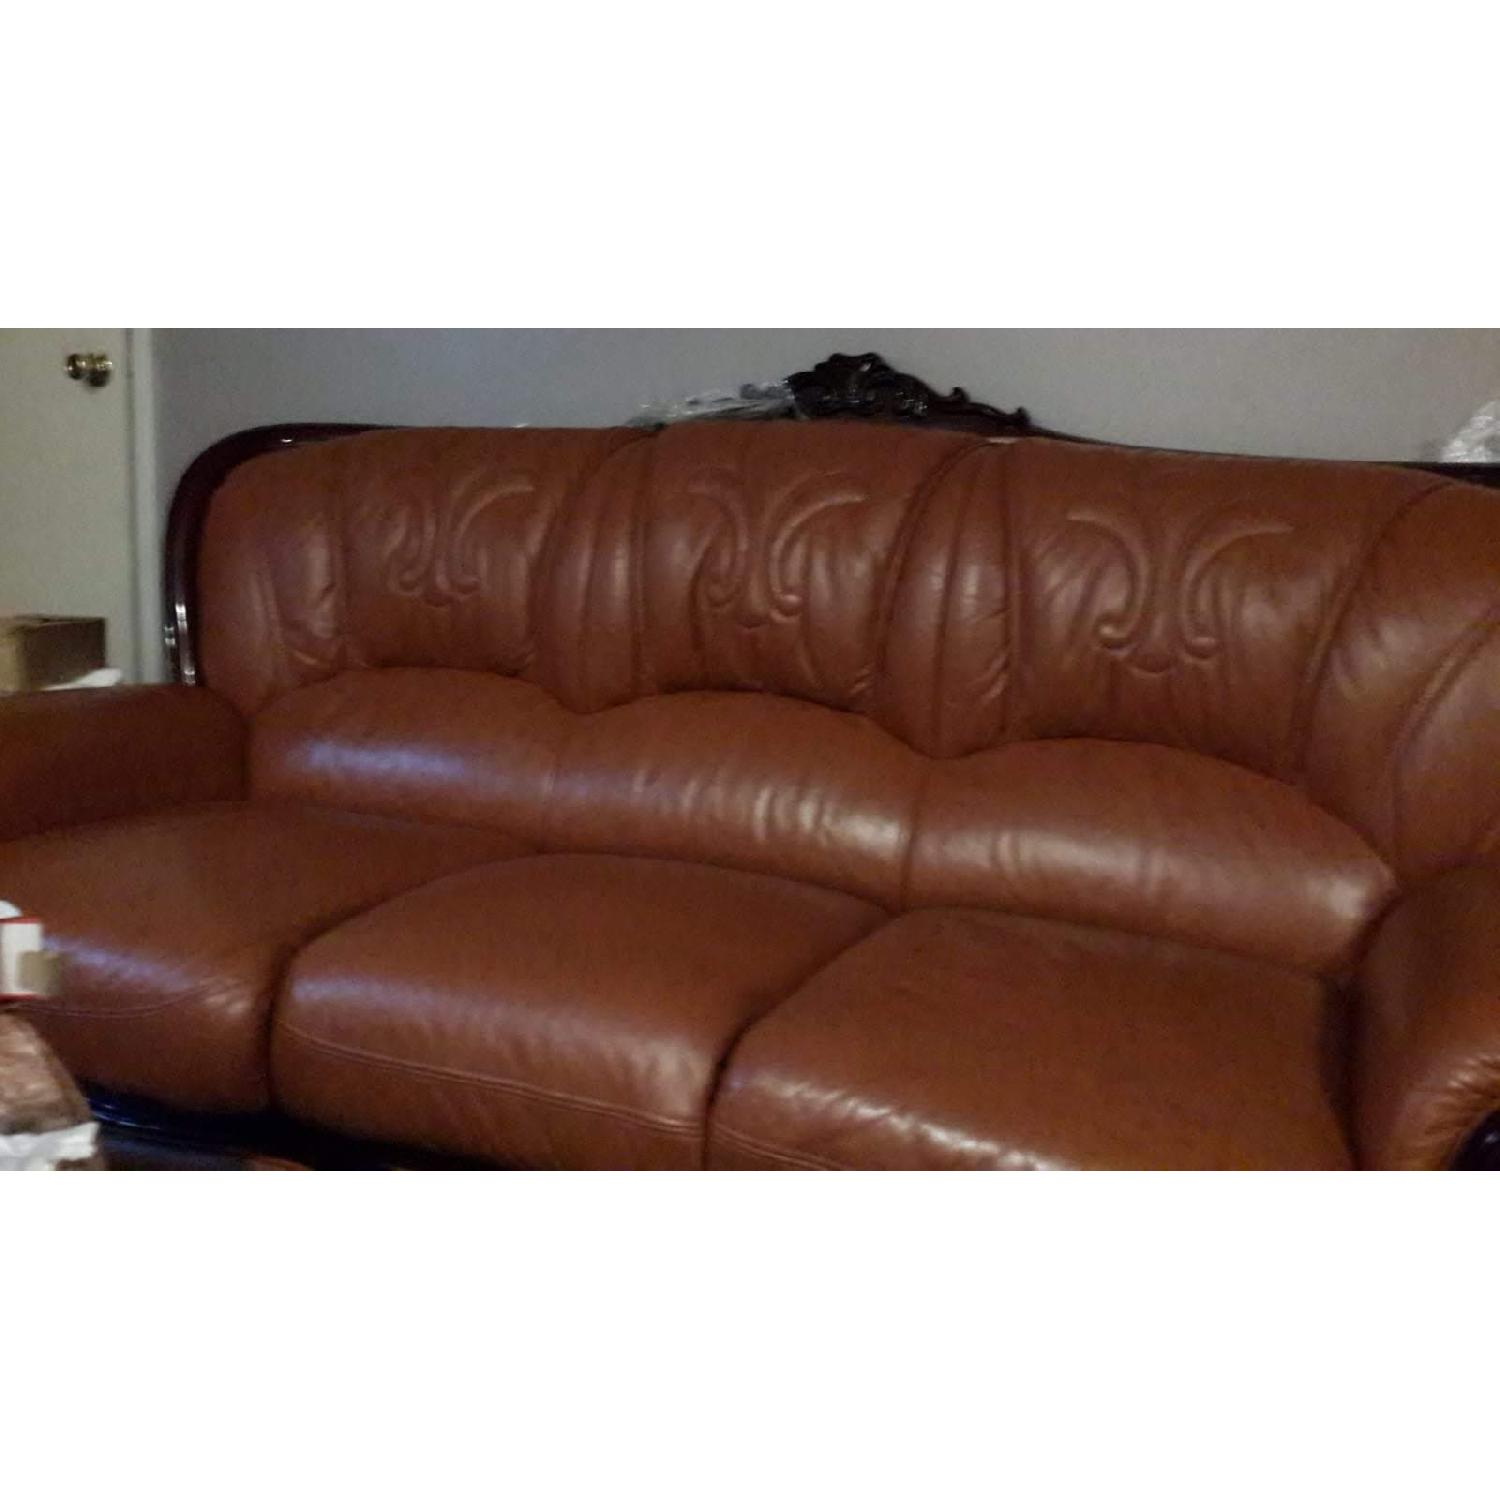 Leather Upholstered 3 Seater Sofa - image-2